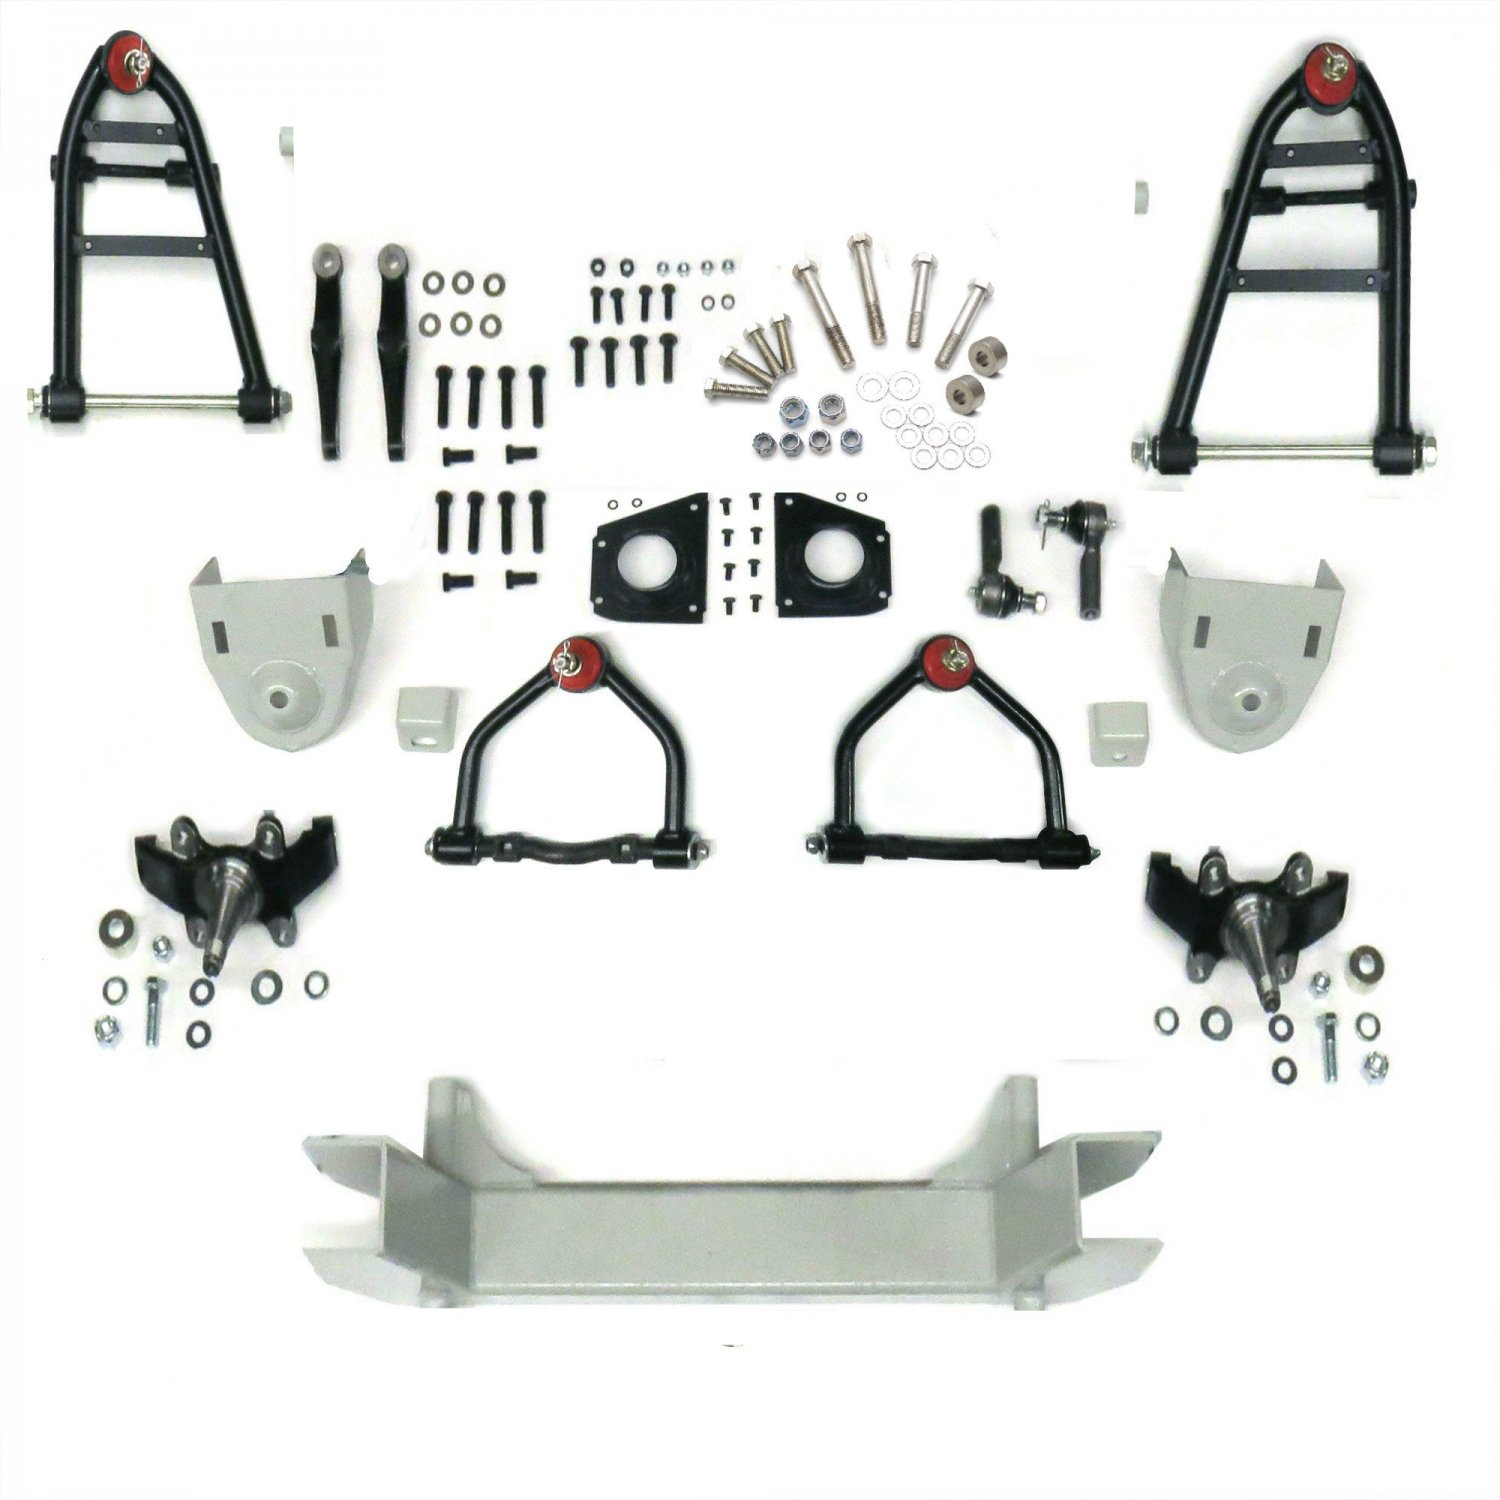 Sell IFS Suspension Mustang II Kit for 1960 - 1966 Chevy or